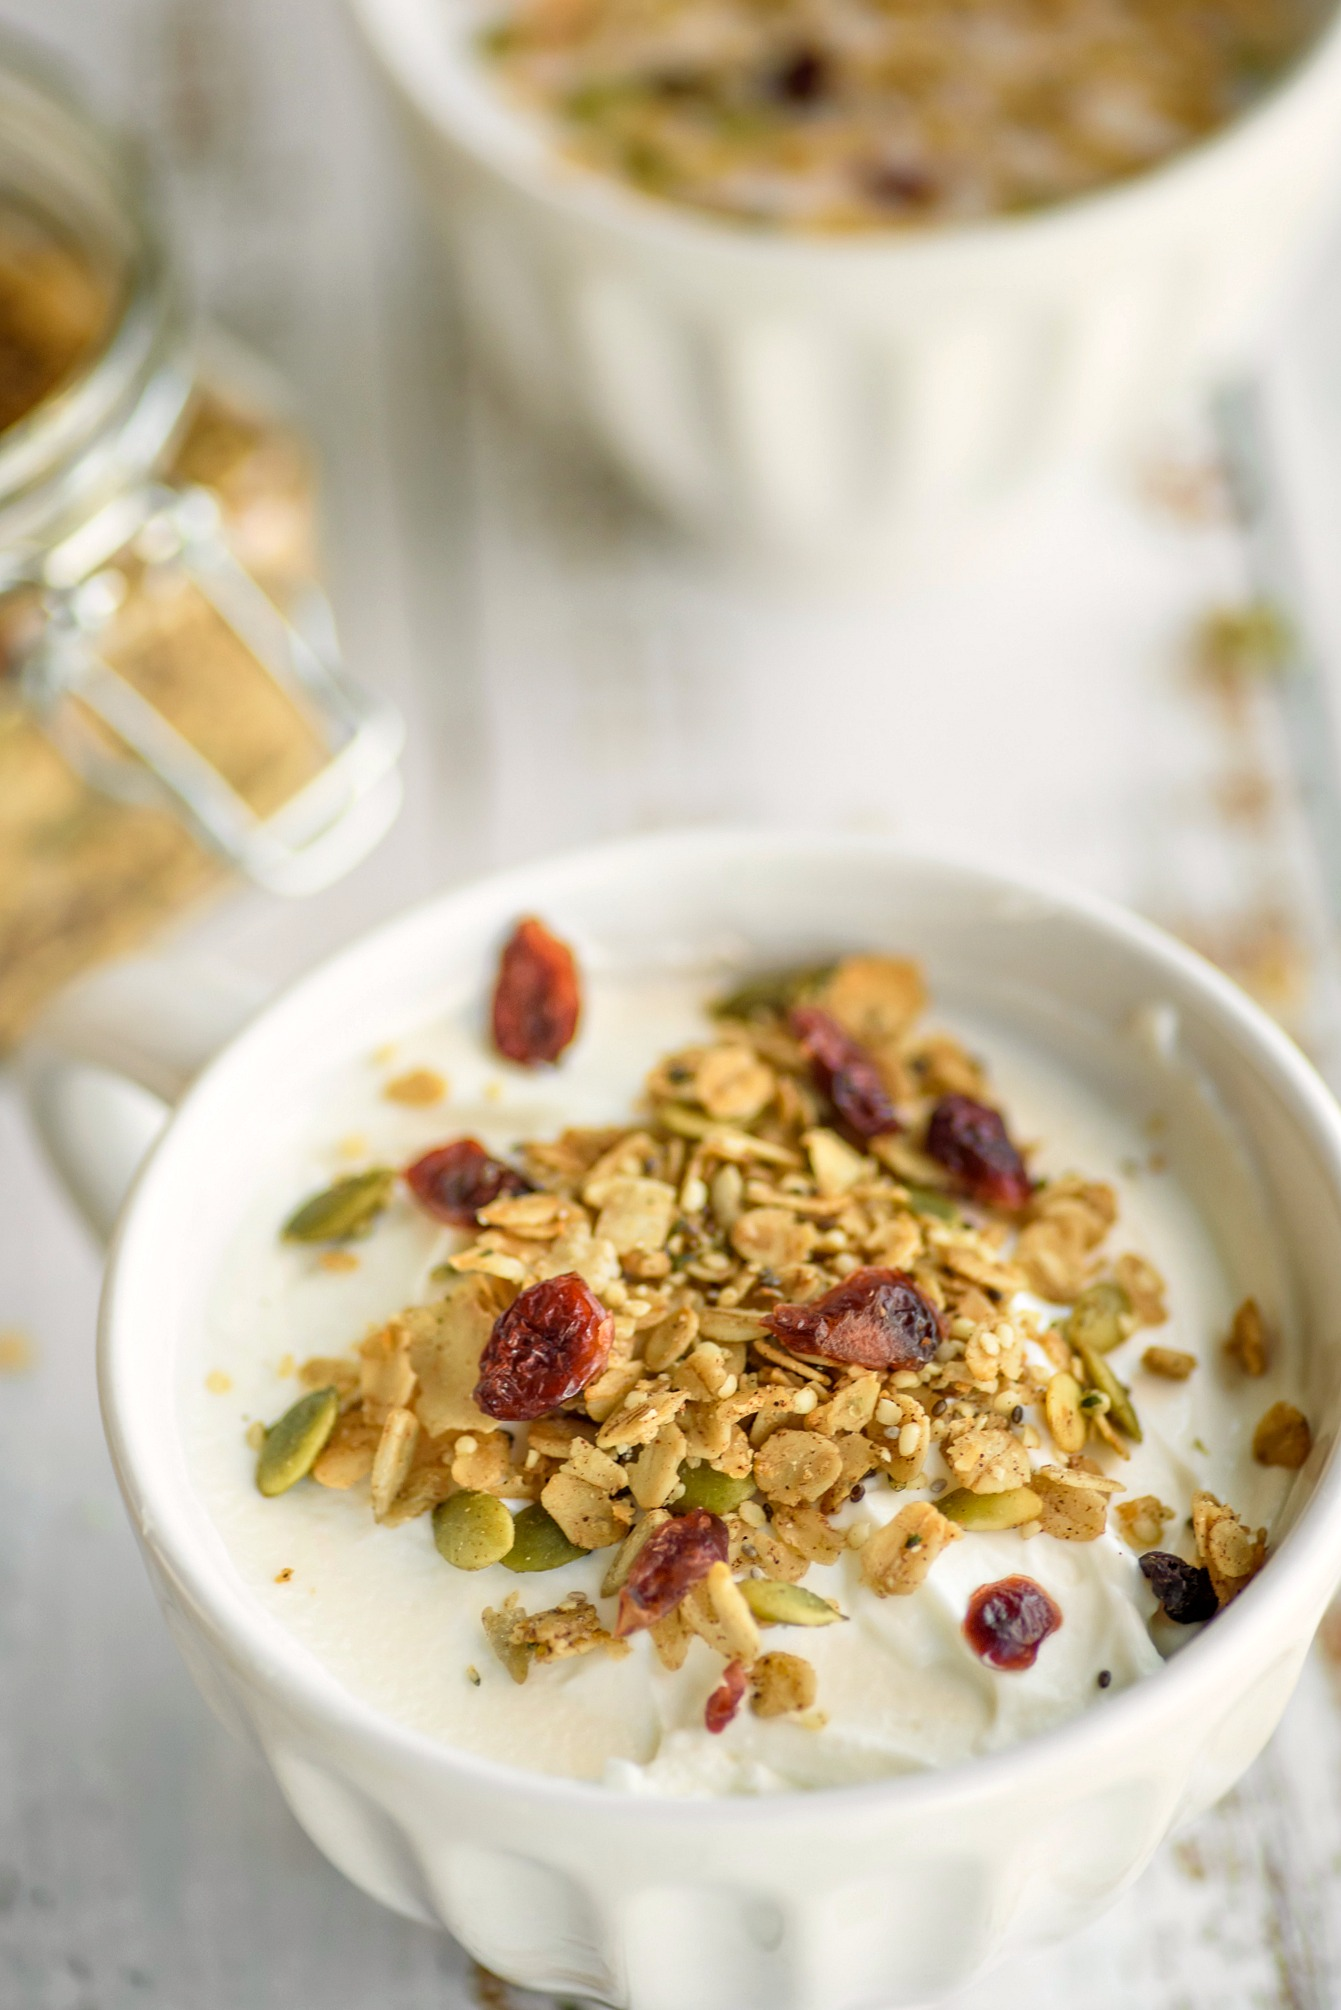 Homemade Nut Free Granola